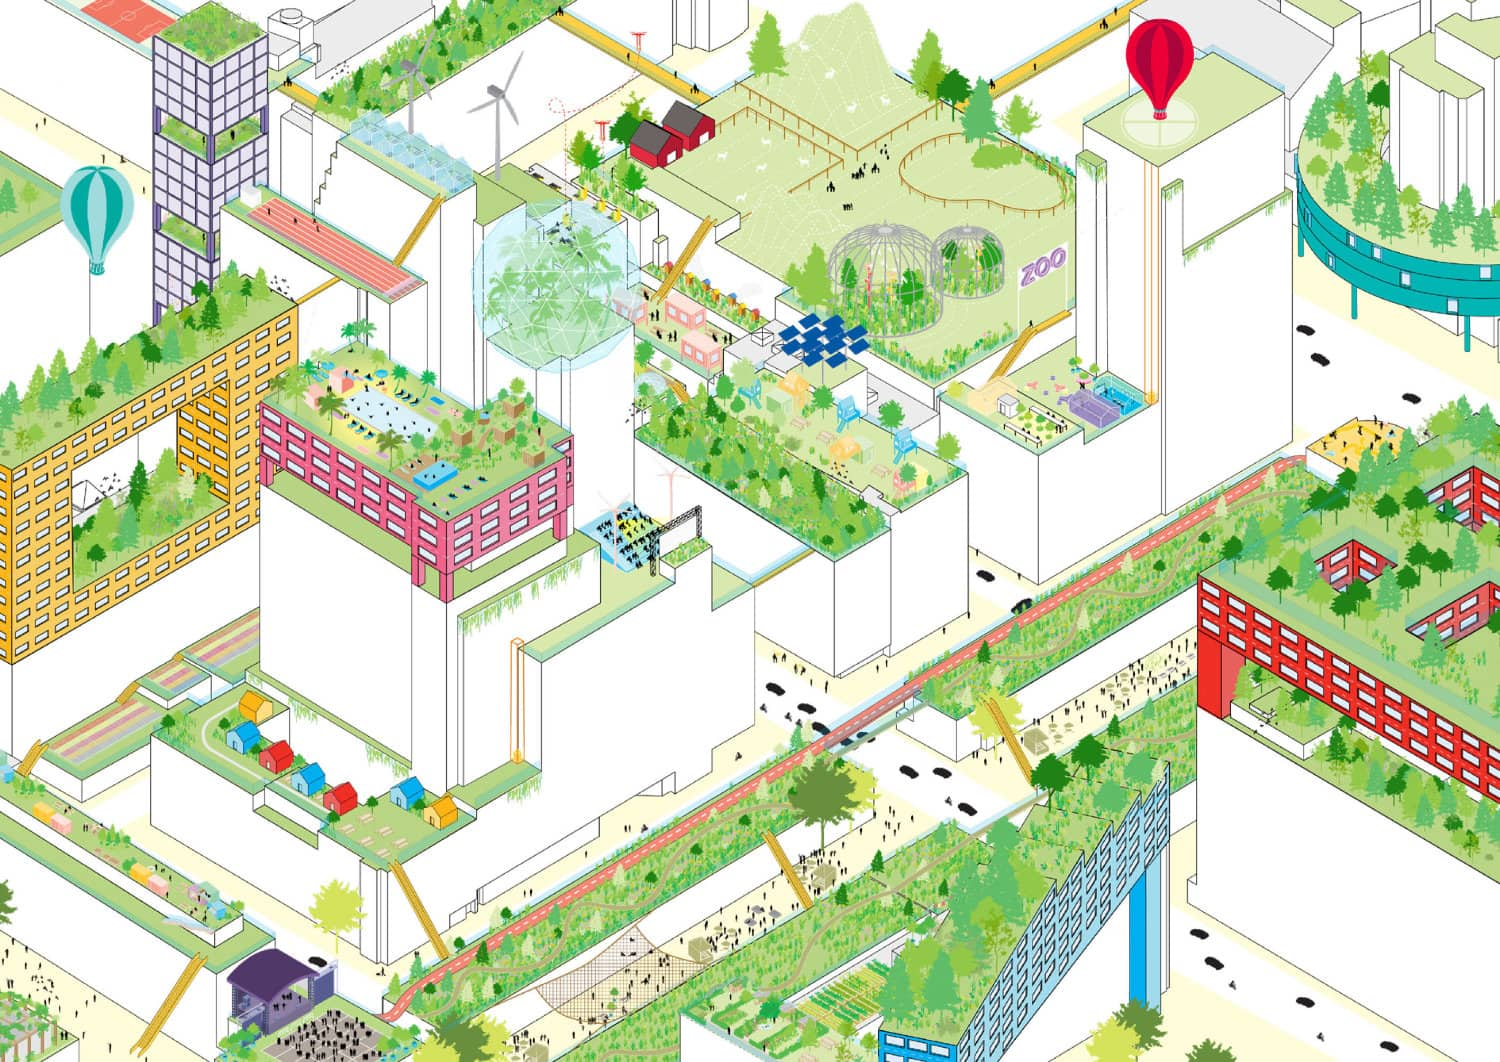 The Rooftop Catalogue offers an inspiring overview of no less than 130 different possibilities